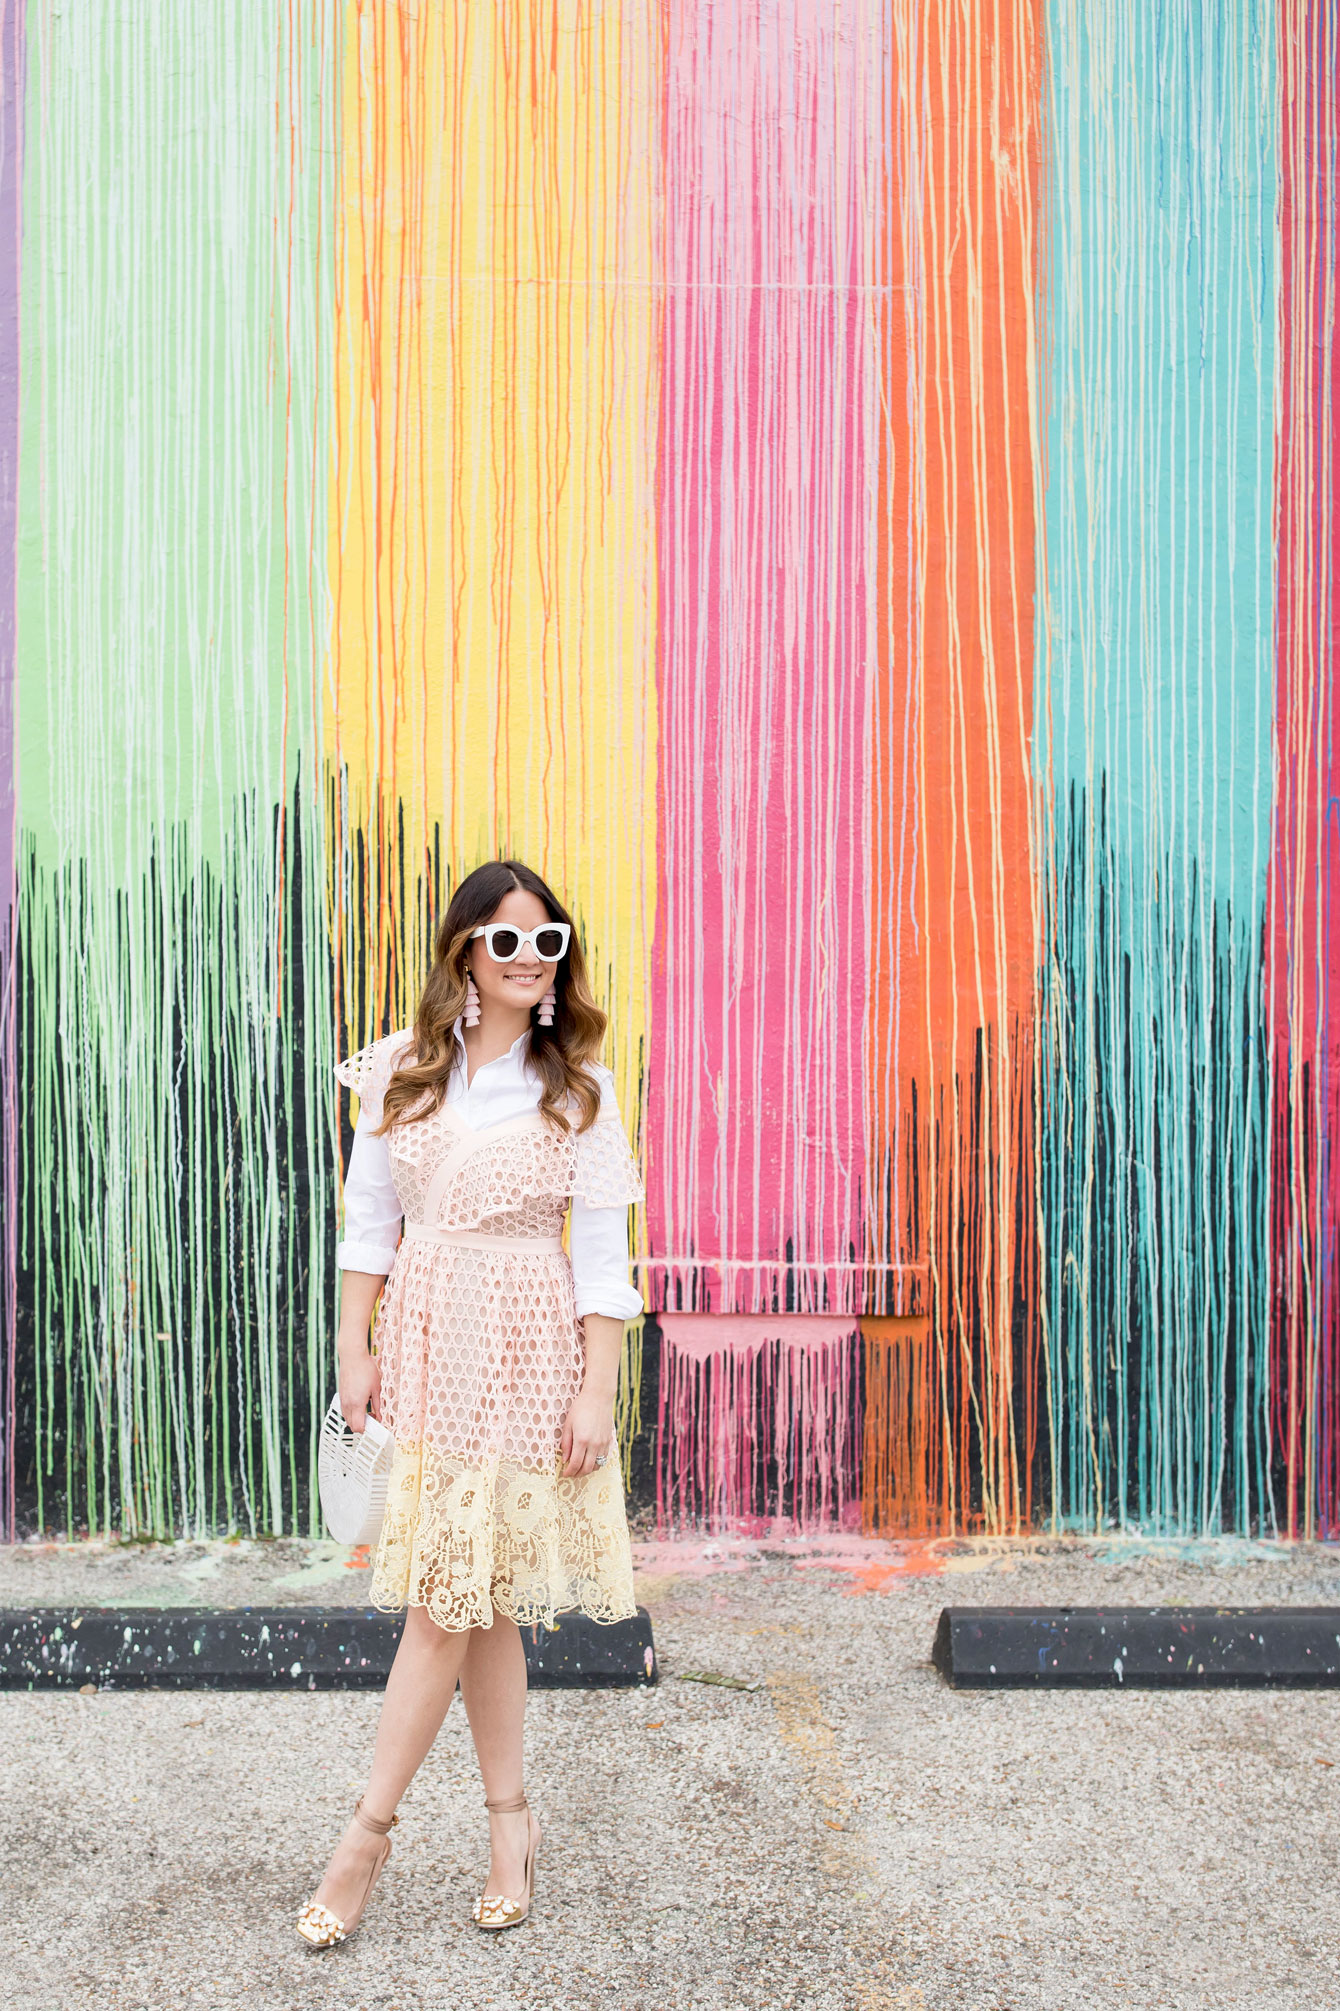 dripping-rainbow-paint-mural-houston.jpg